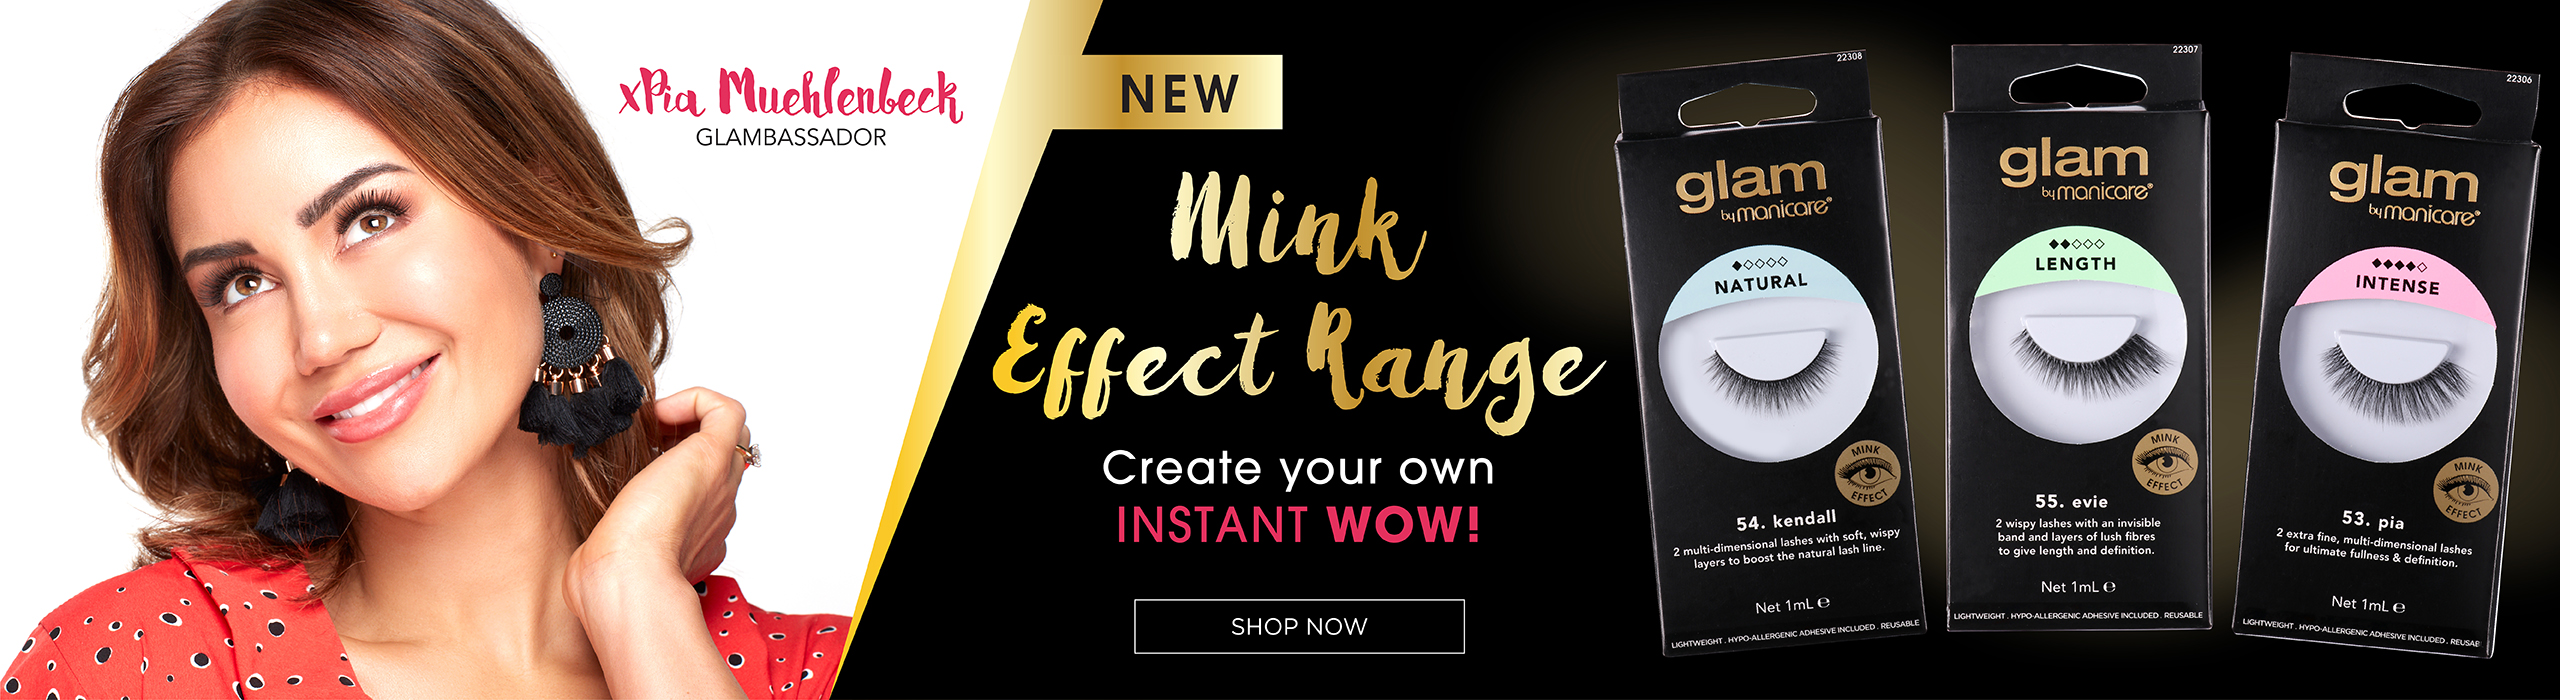 New Mink Effect Range from Glam by Manicare. Create your instant wow!